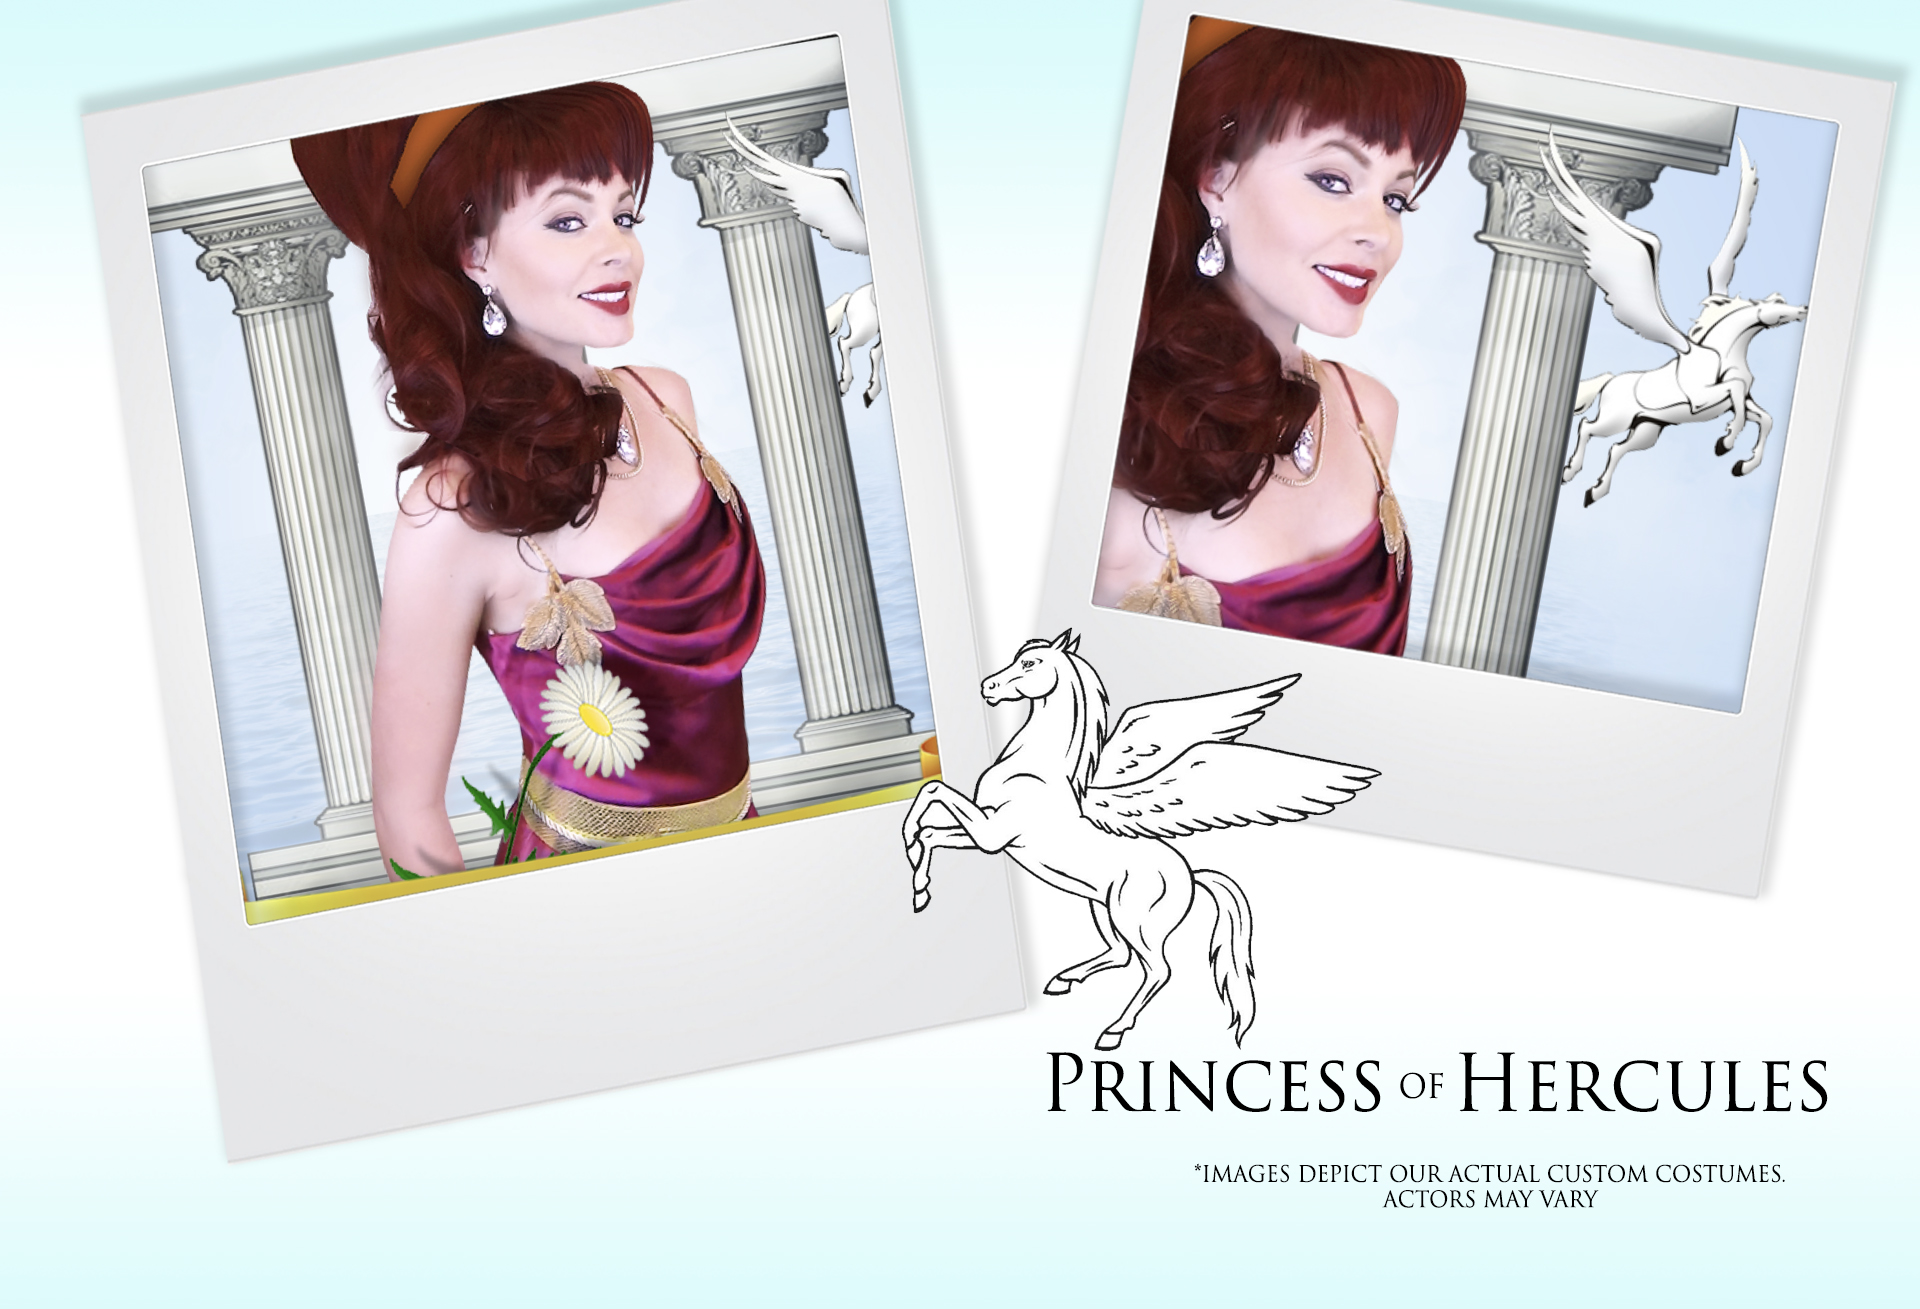 Princess of Hercules